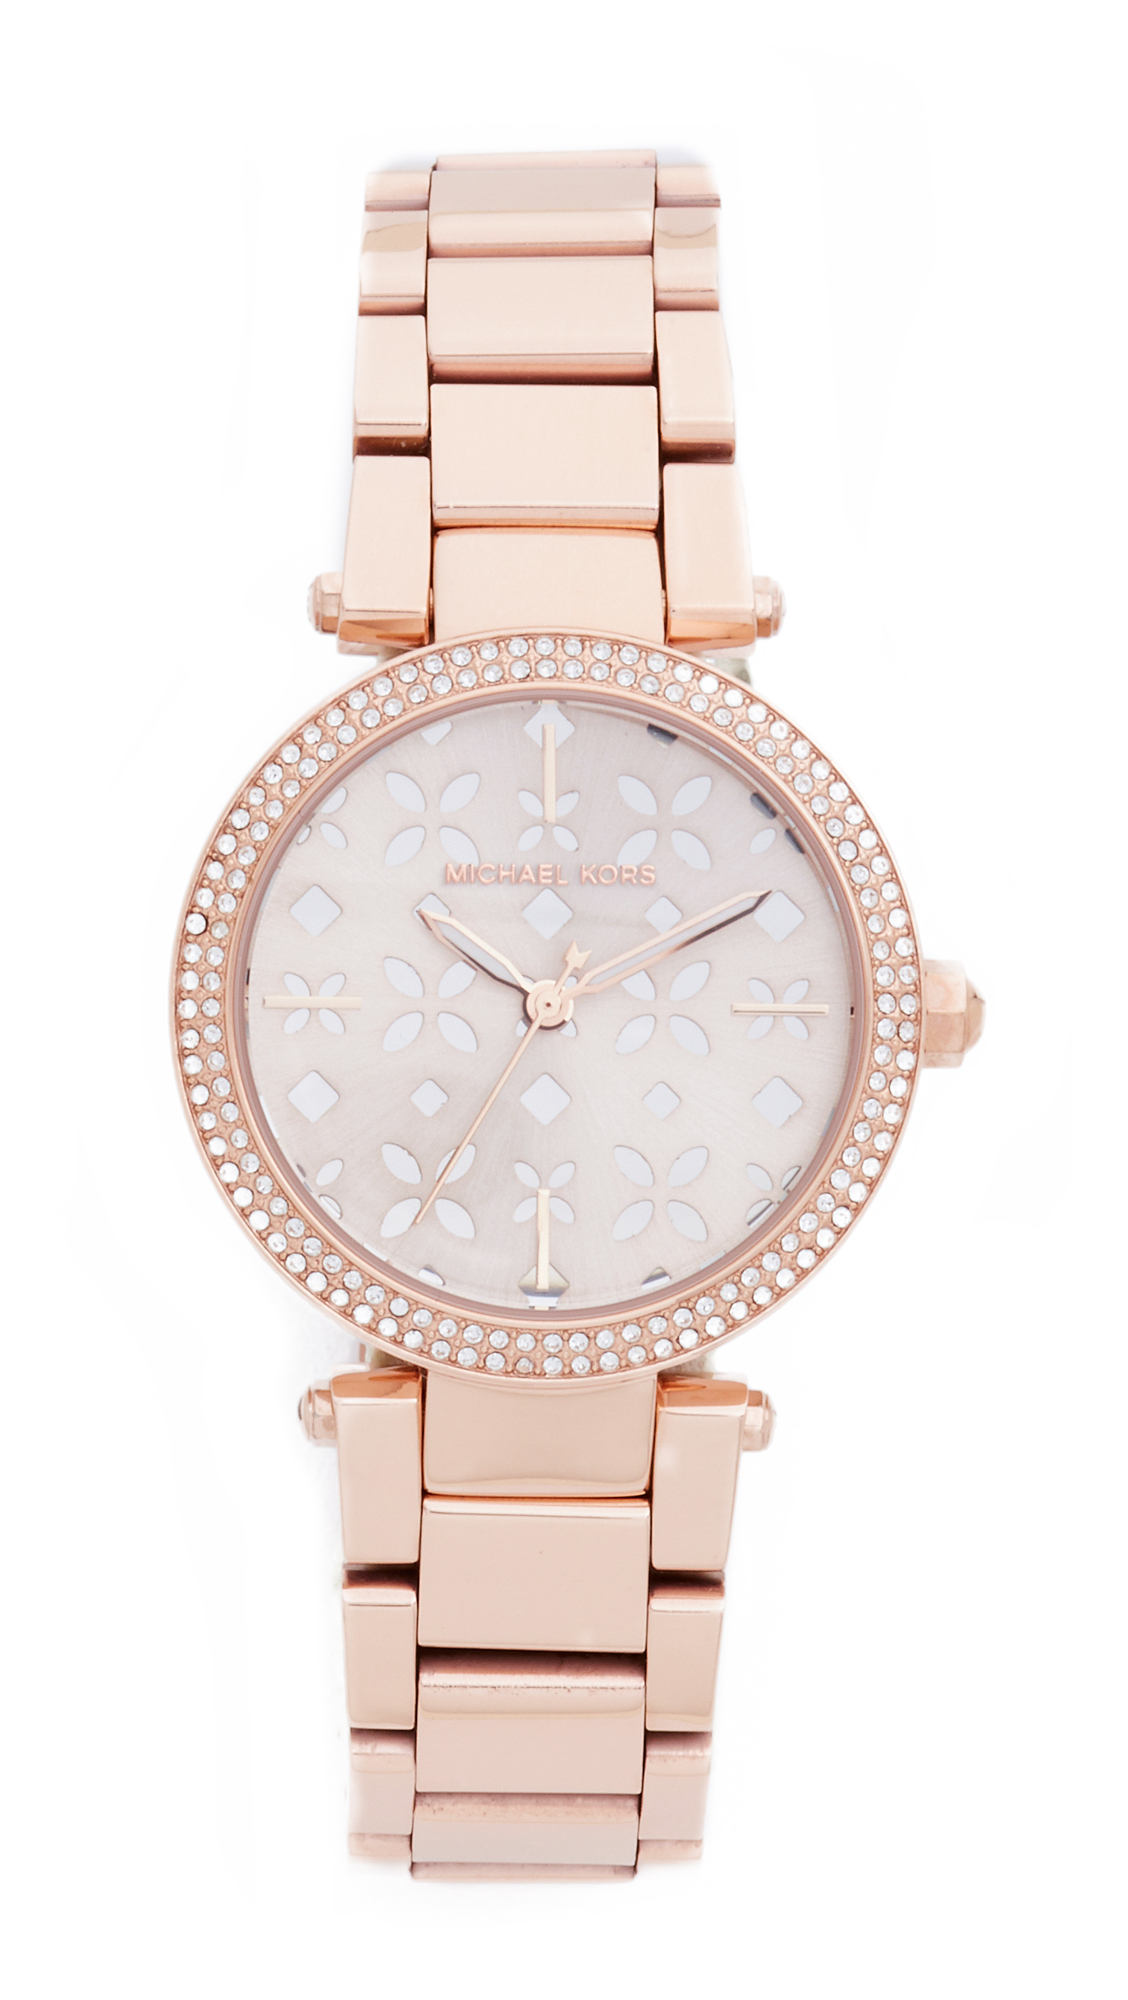 michael kors female michael kors mini parker watch rose goldsilverfloral